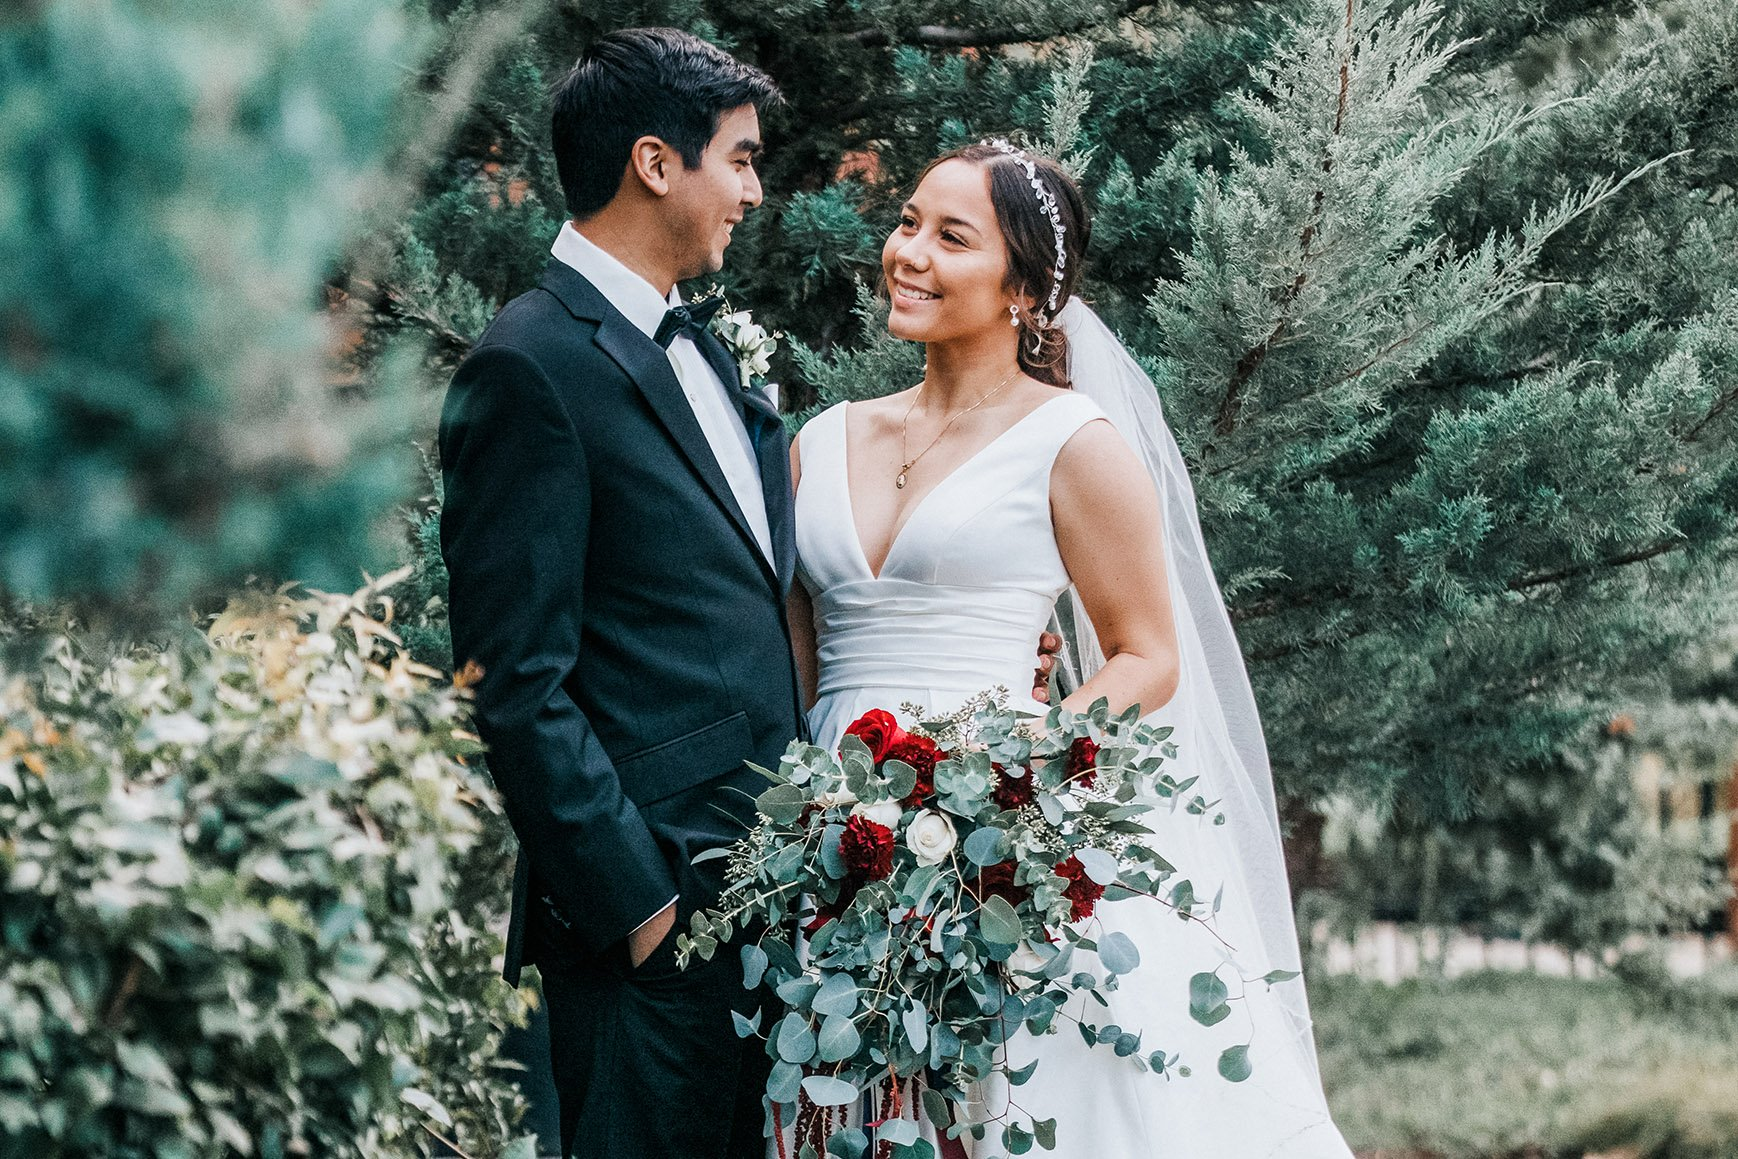 Gorgeous wedding venues in the Sacramento Valley in California